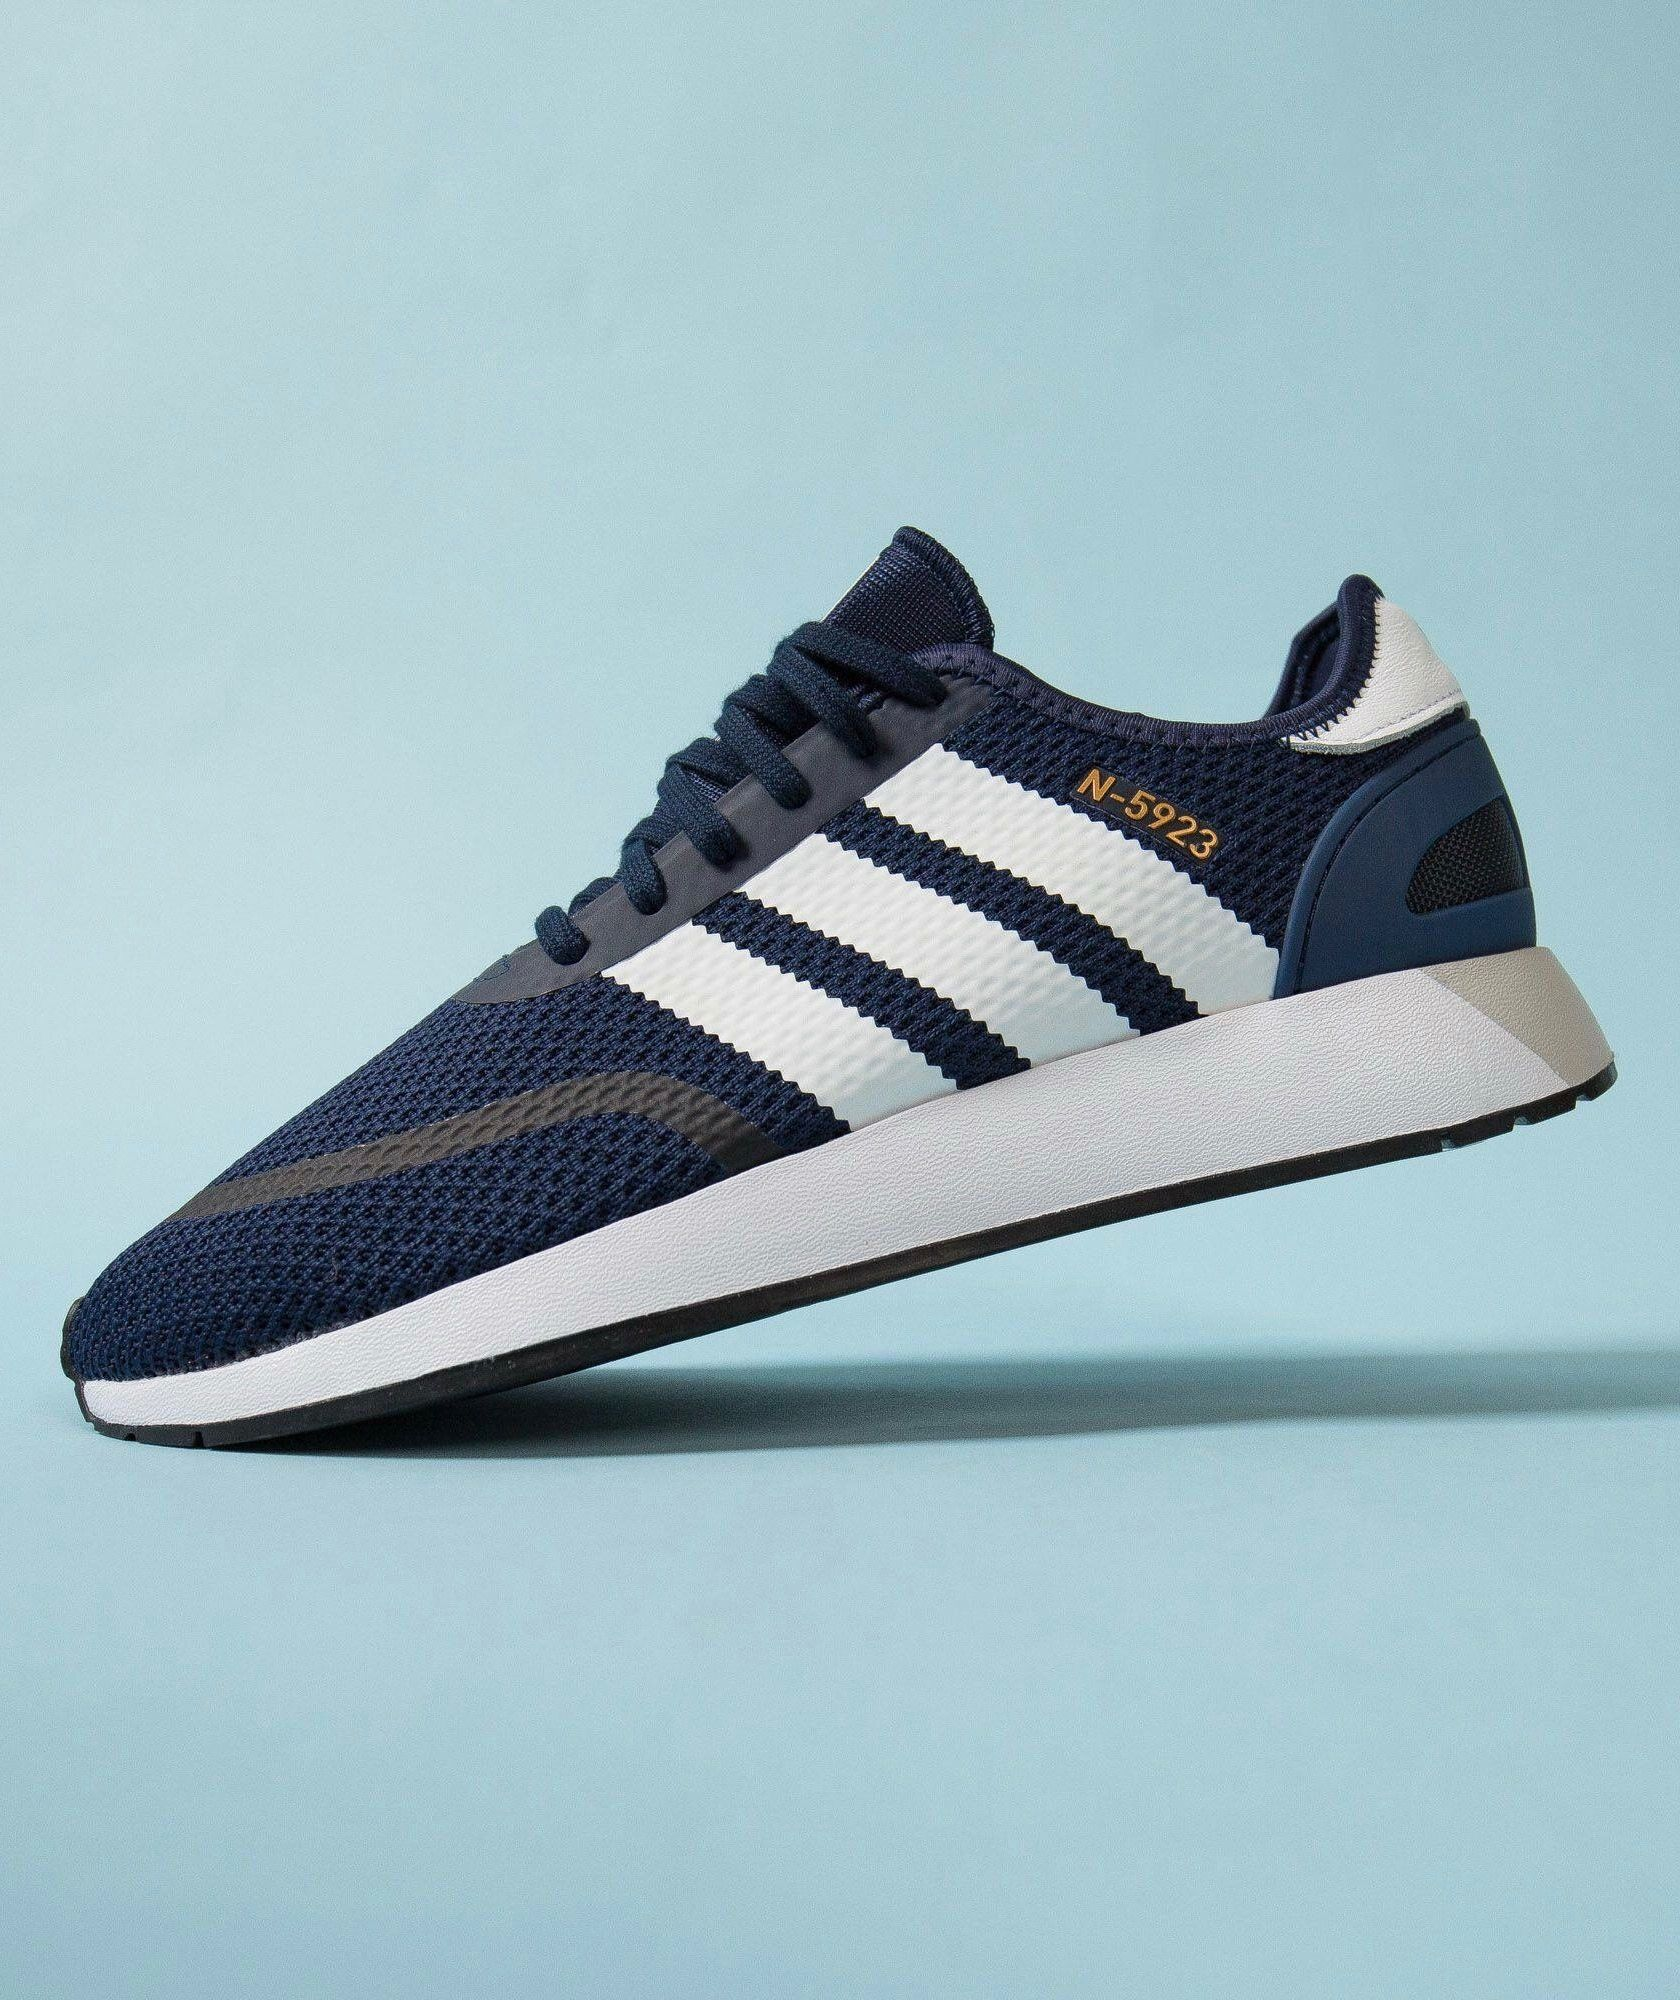 uk availability a328c 306e6 adidas Originals N-5923